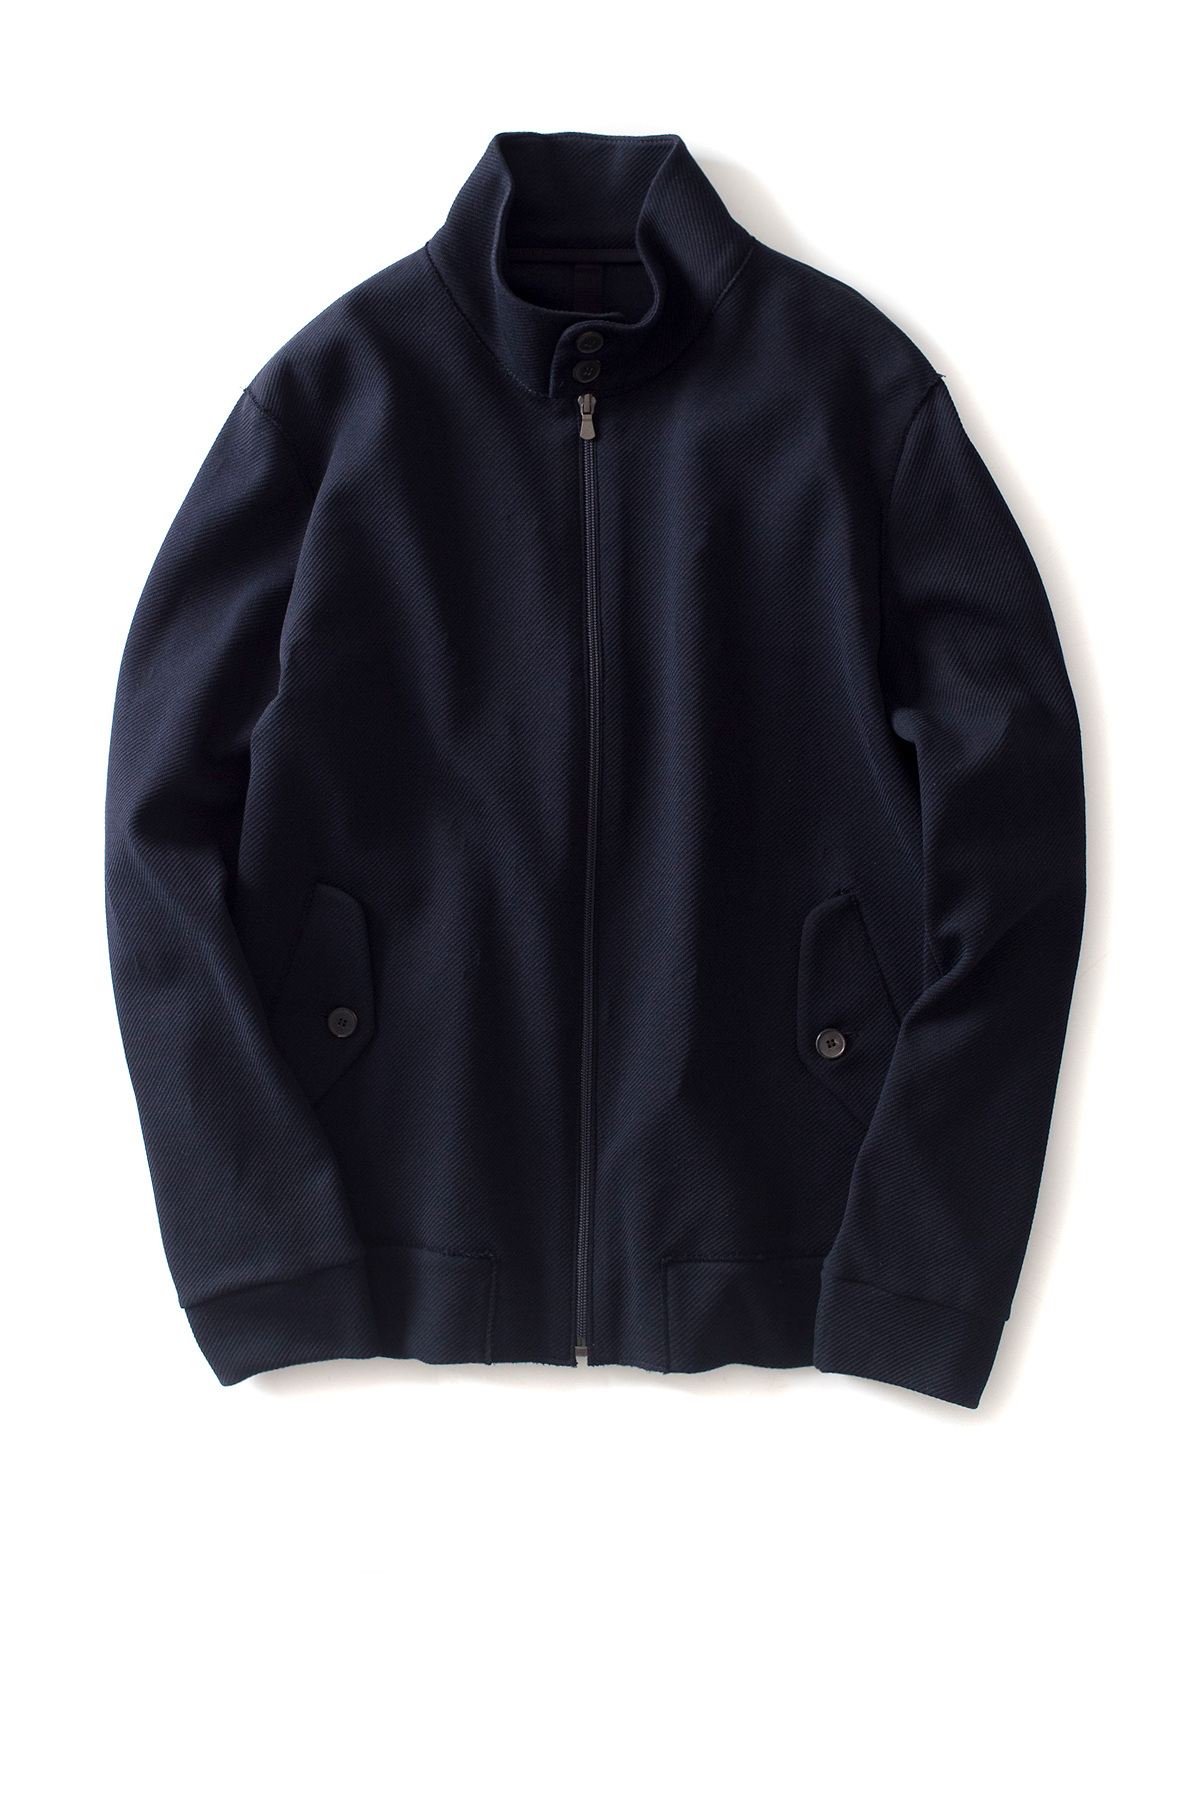 Harris Wharf London : Men Harrington Jacket Cavalry Twill (Dark Blue)